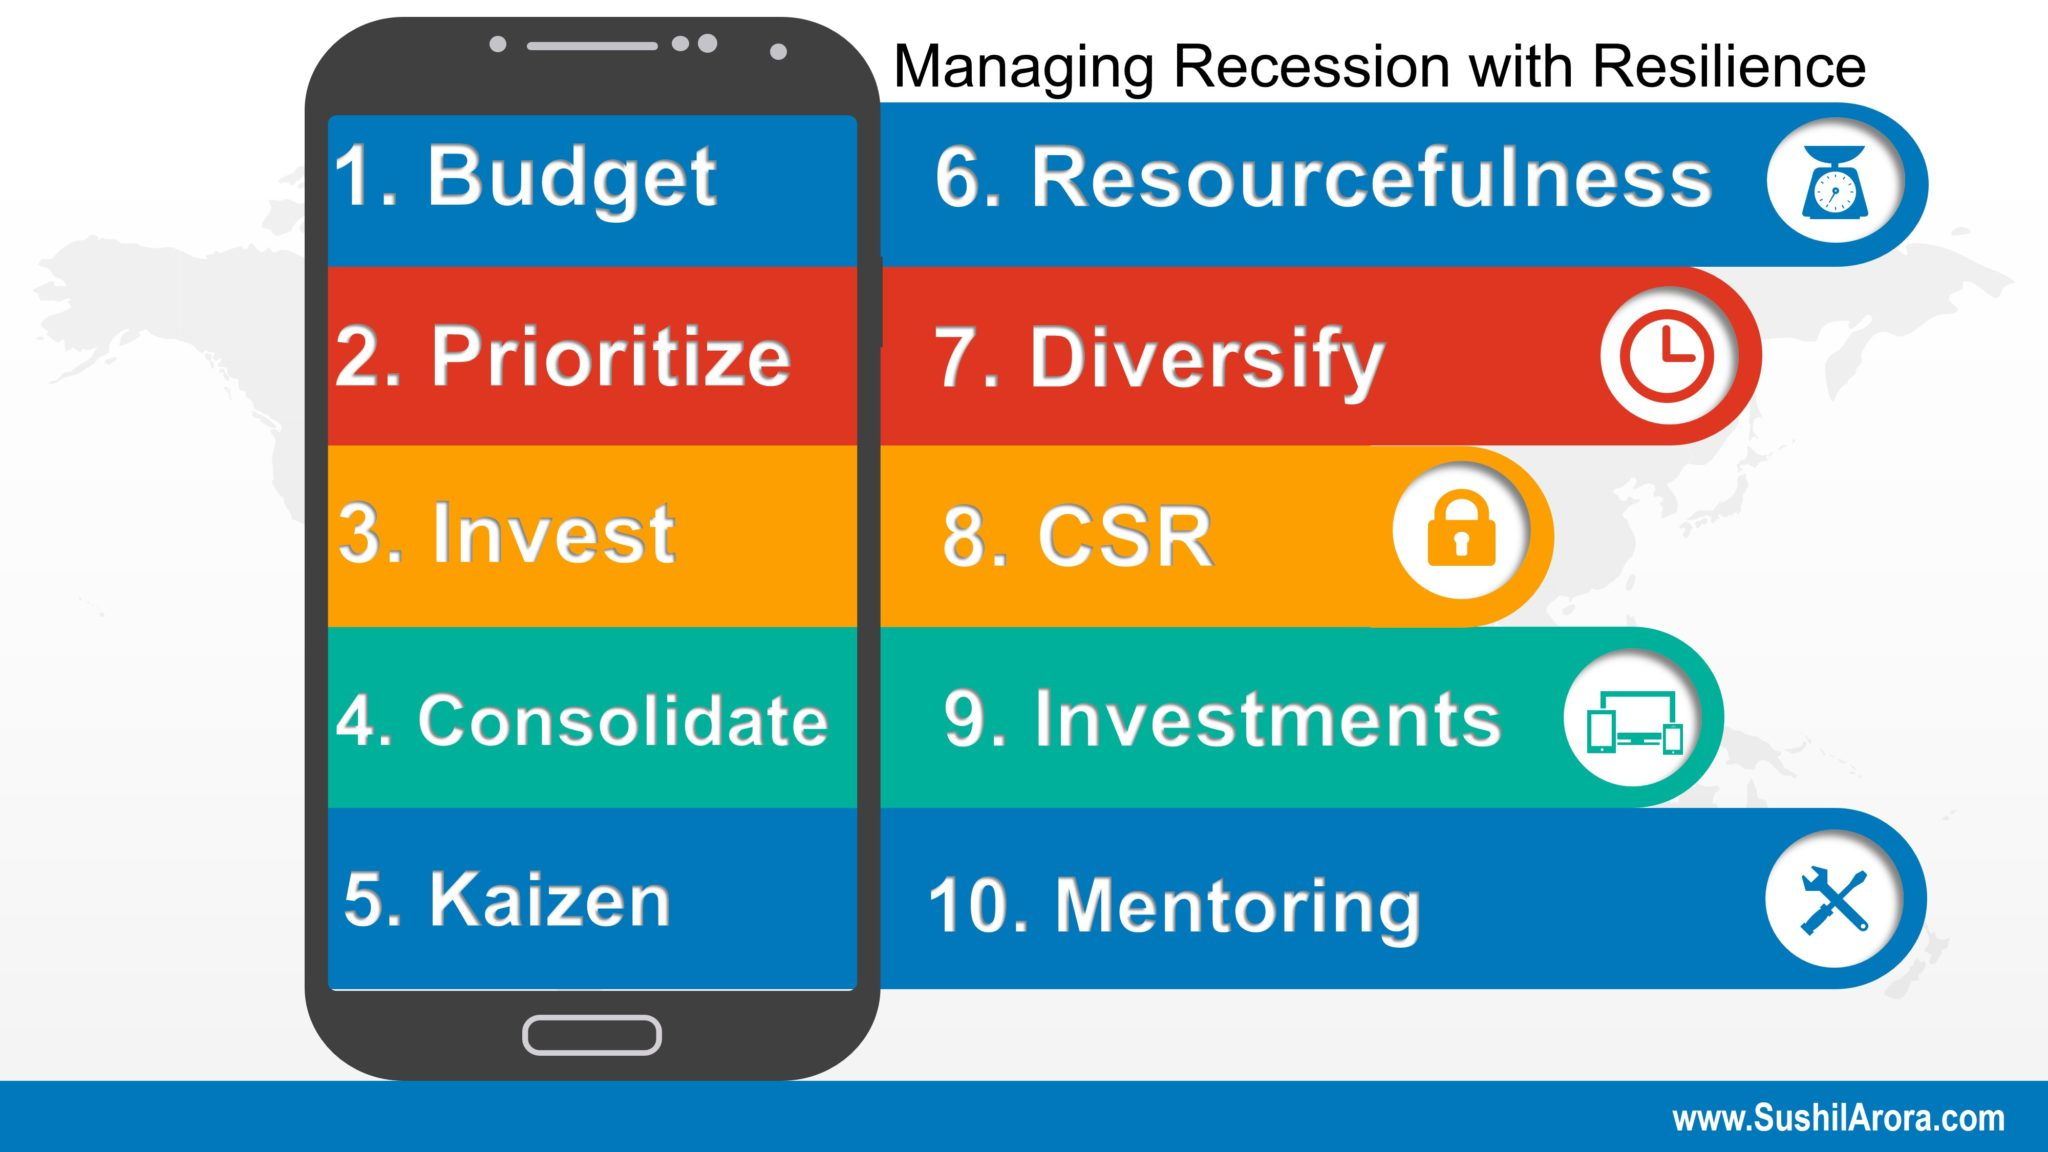 How to manage recession